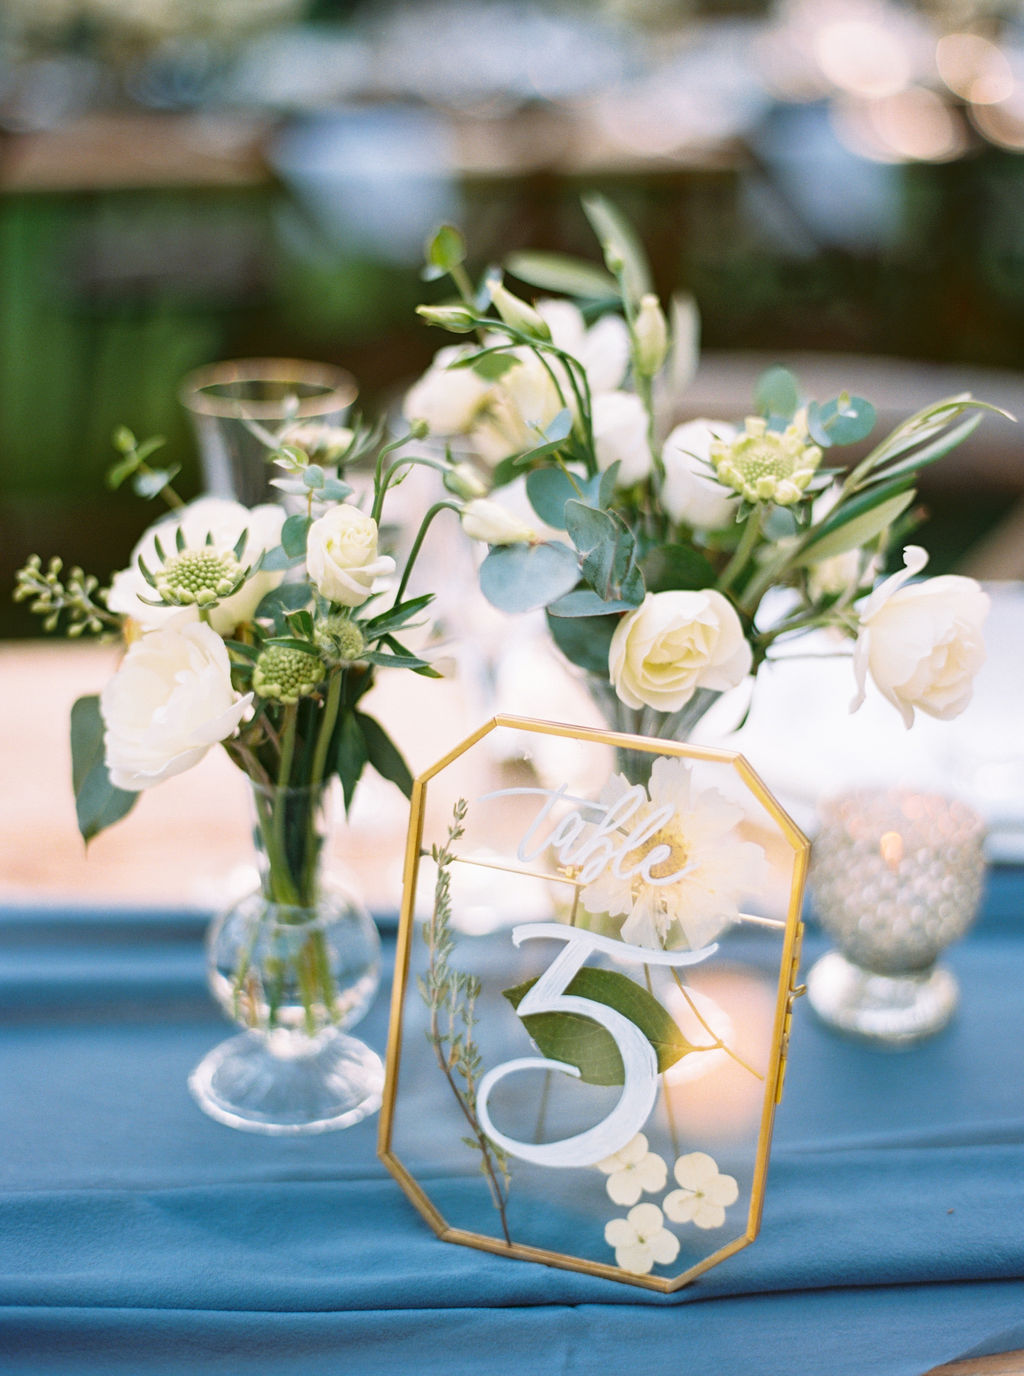 white bud vase centerpiece flowers.JPG